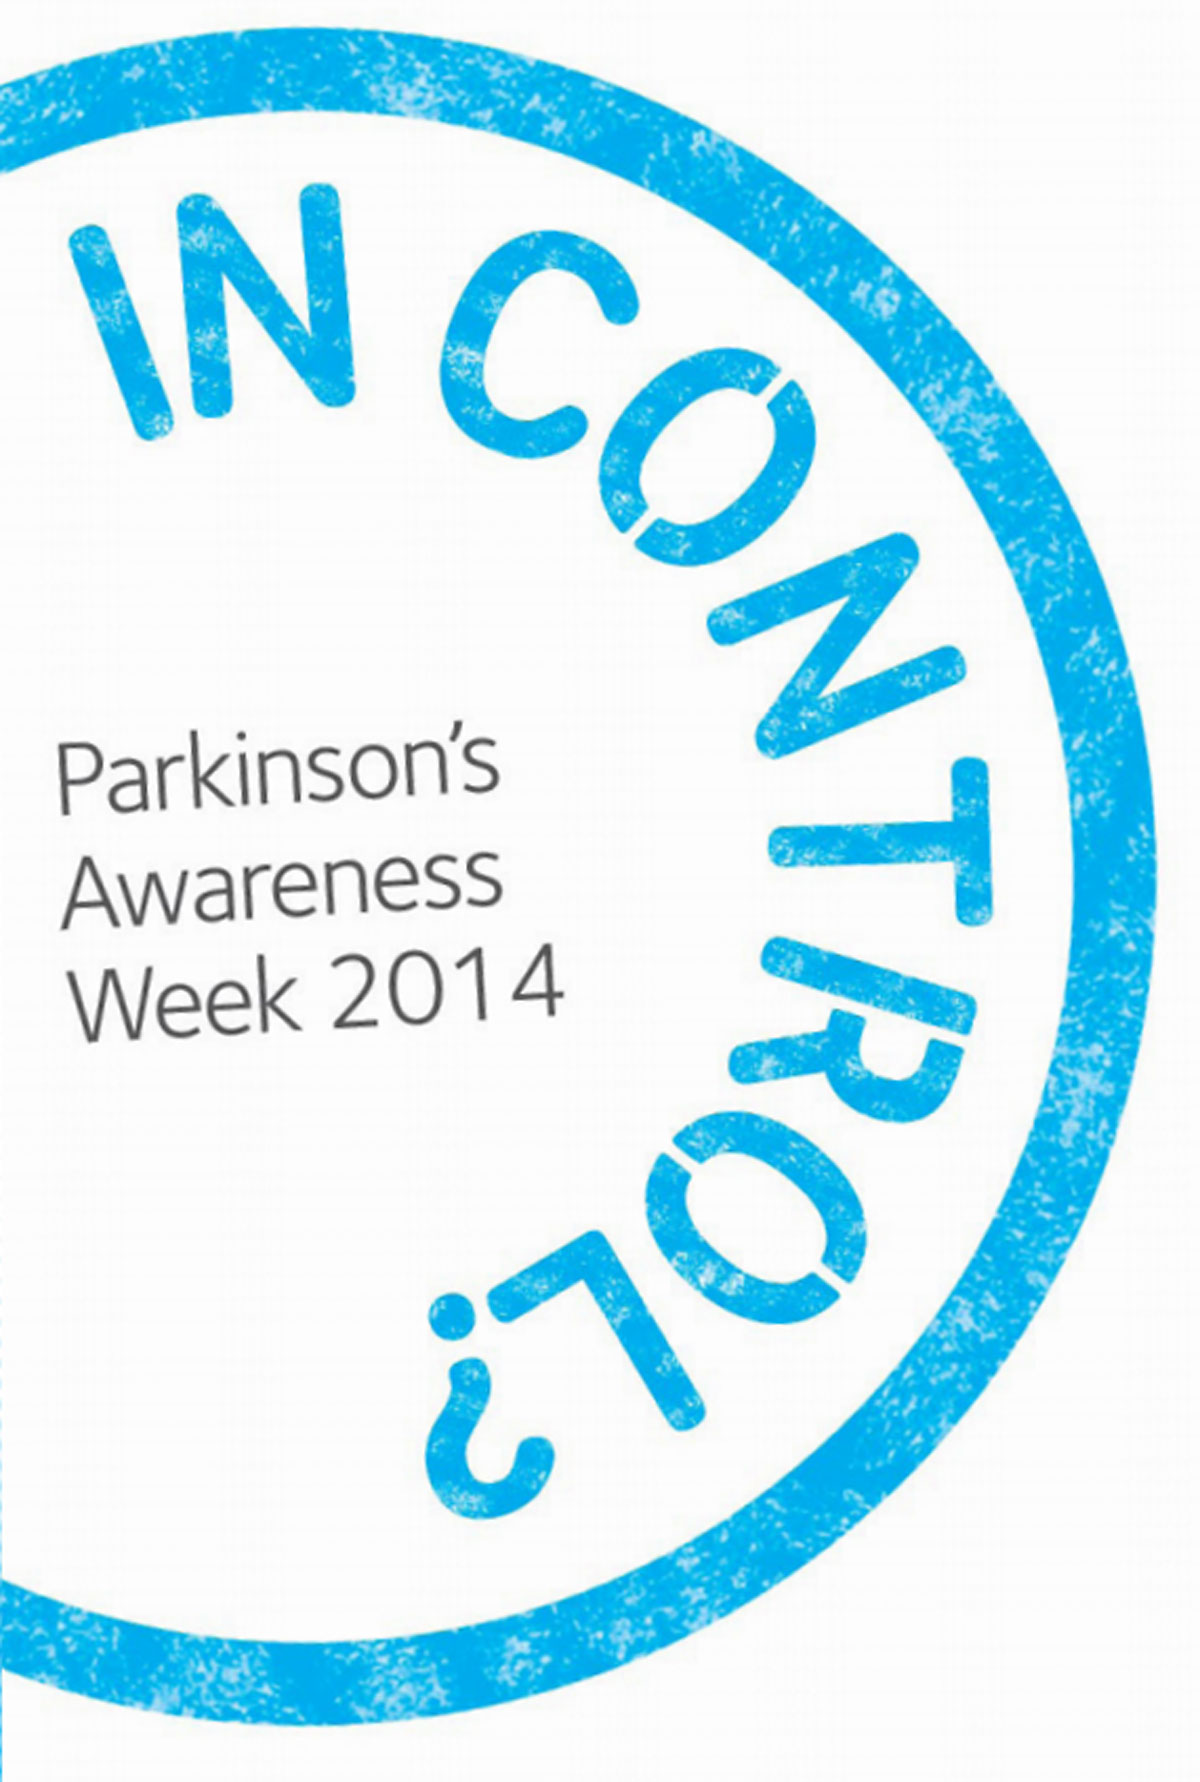 Parkinson's Awareness Week 2014